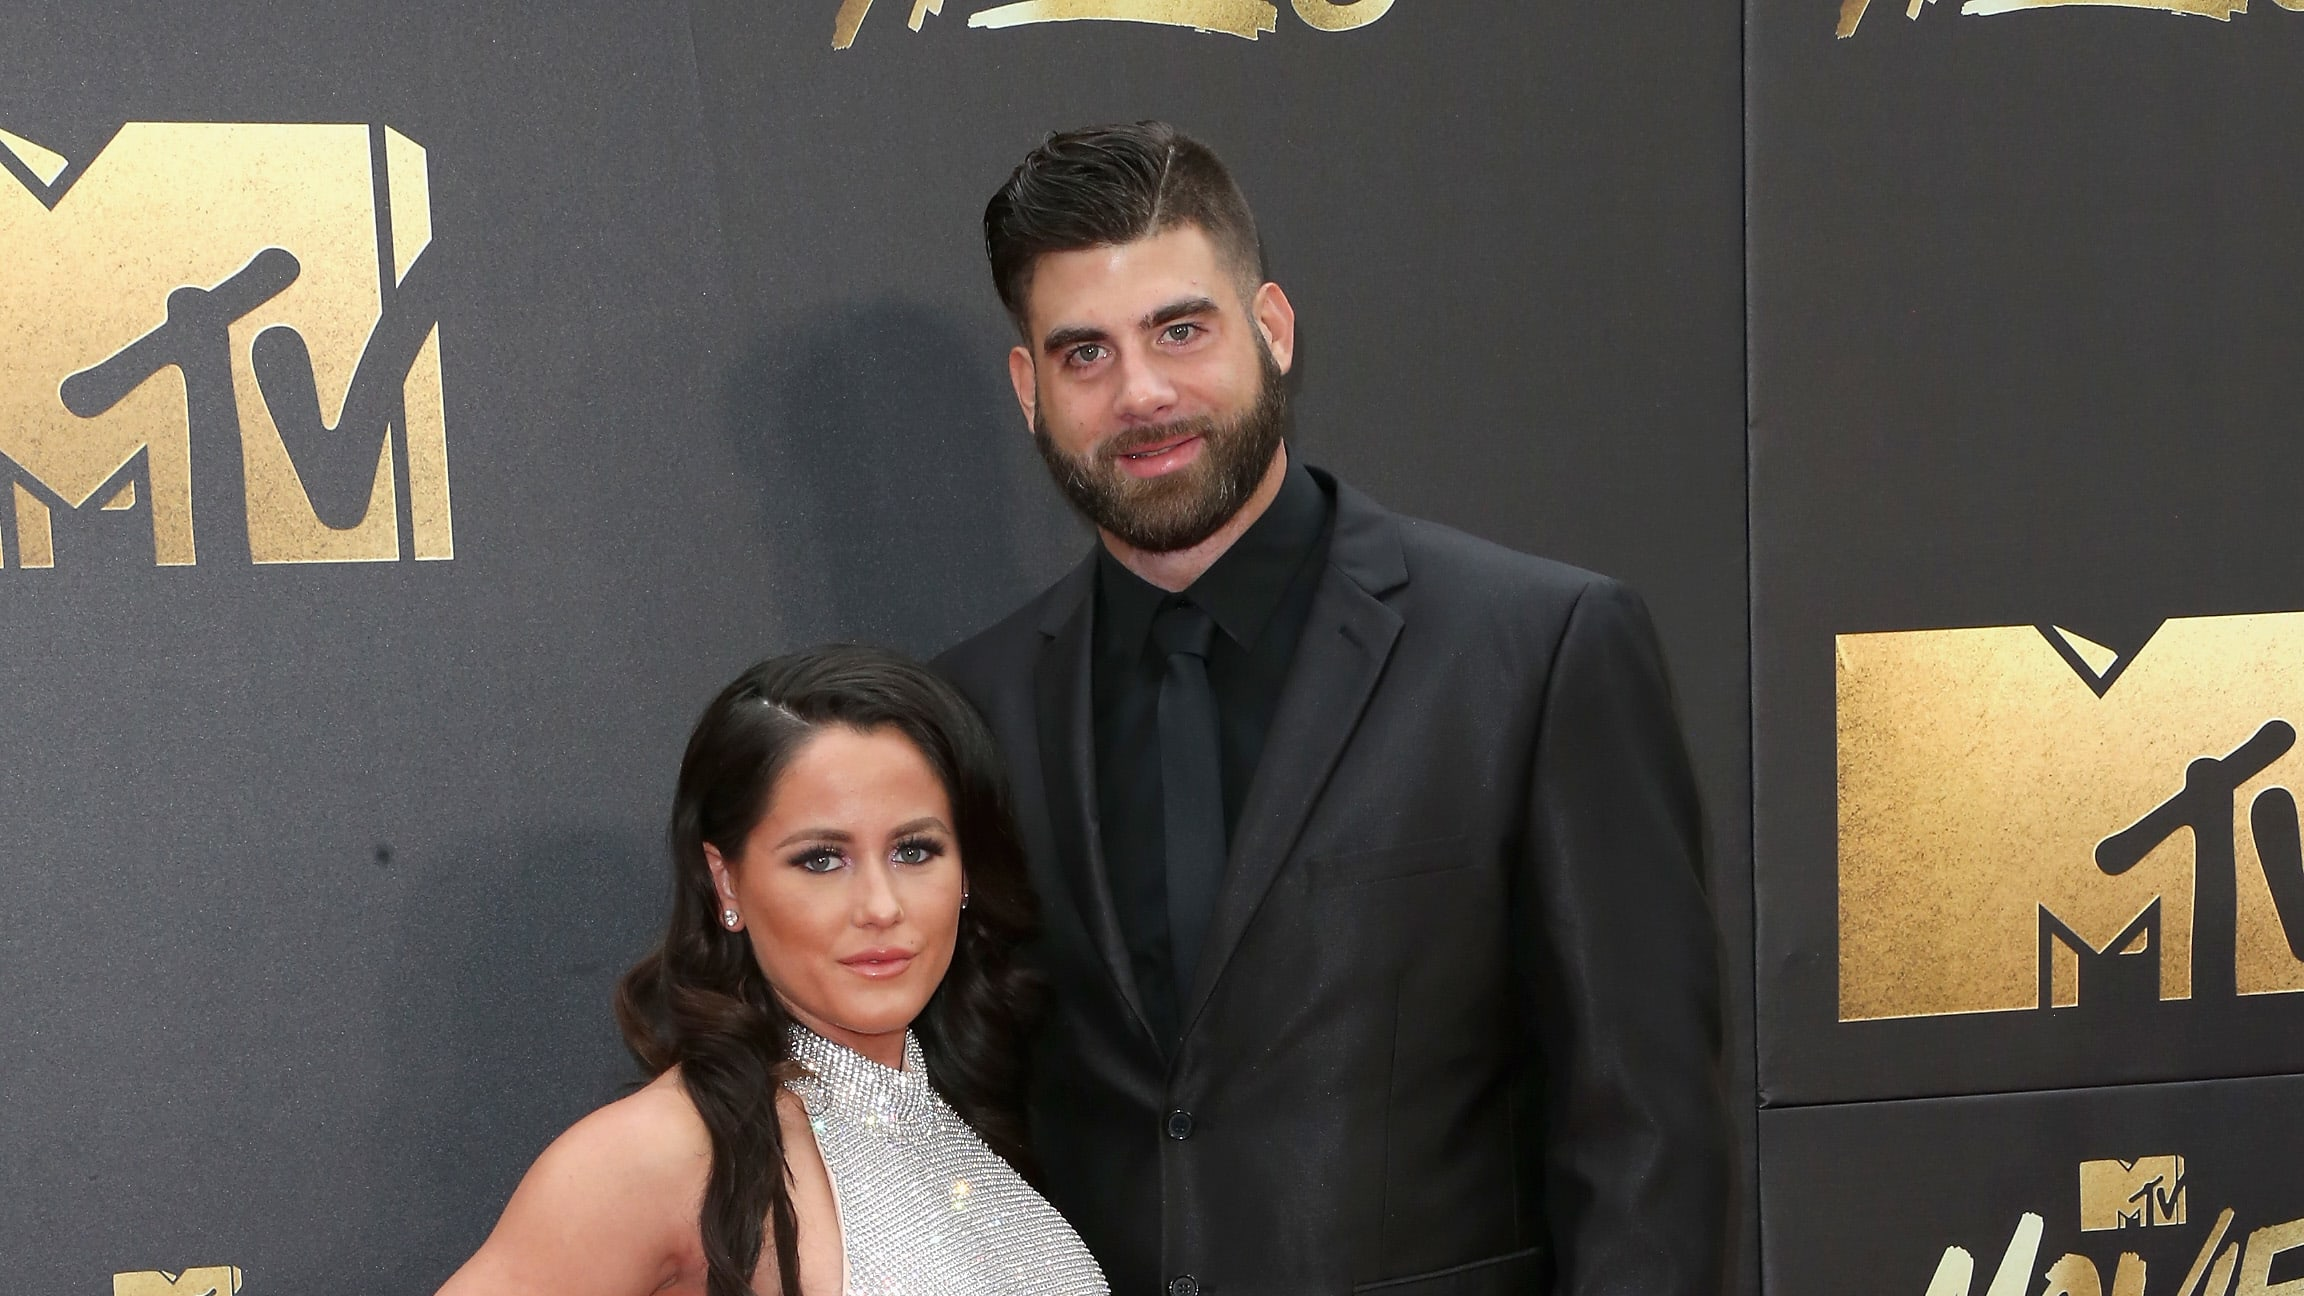 BURBANK, CALIFORNIA - APRIL 09:  TV personality Jenelle Evans (L) and David Eason attend the 2016 MTV Movie Awards at Warner Bros. Studios on April 9, 2016 in Burbank, California.  MTV Movie Awards airs April 10, 2016 at 8pm ET/PT.  (Photo by Frederick M. Brown/Getty Images)